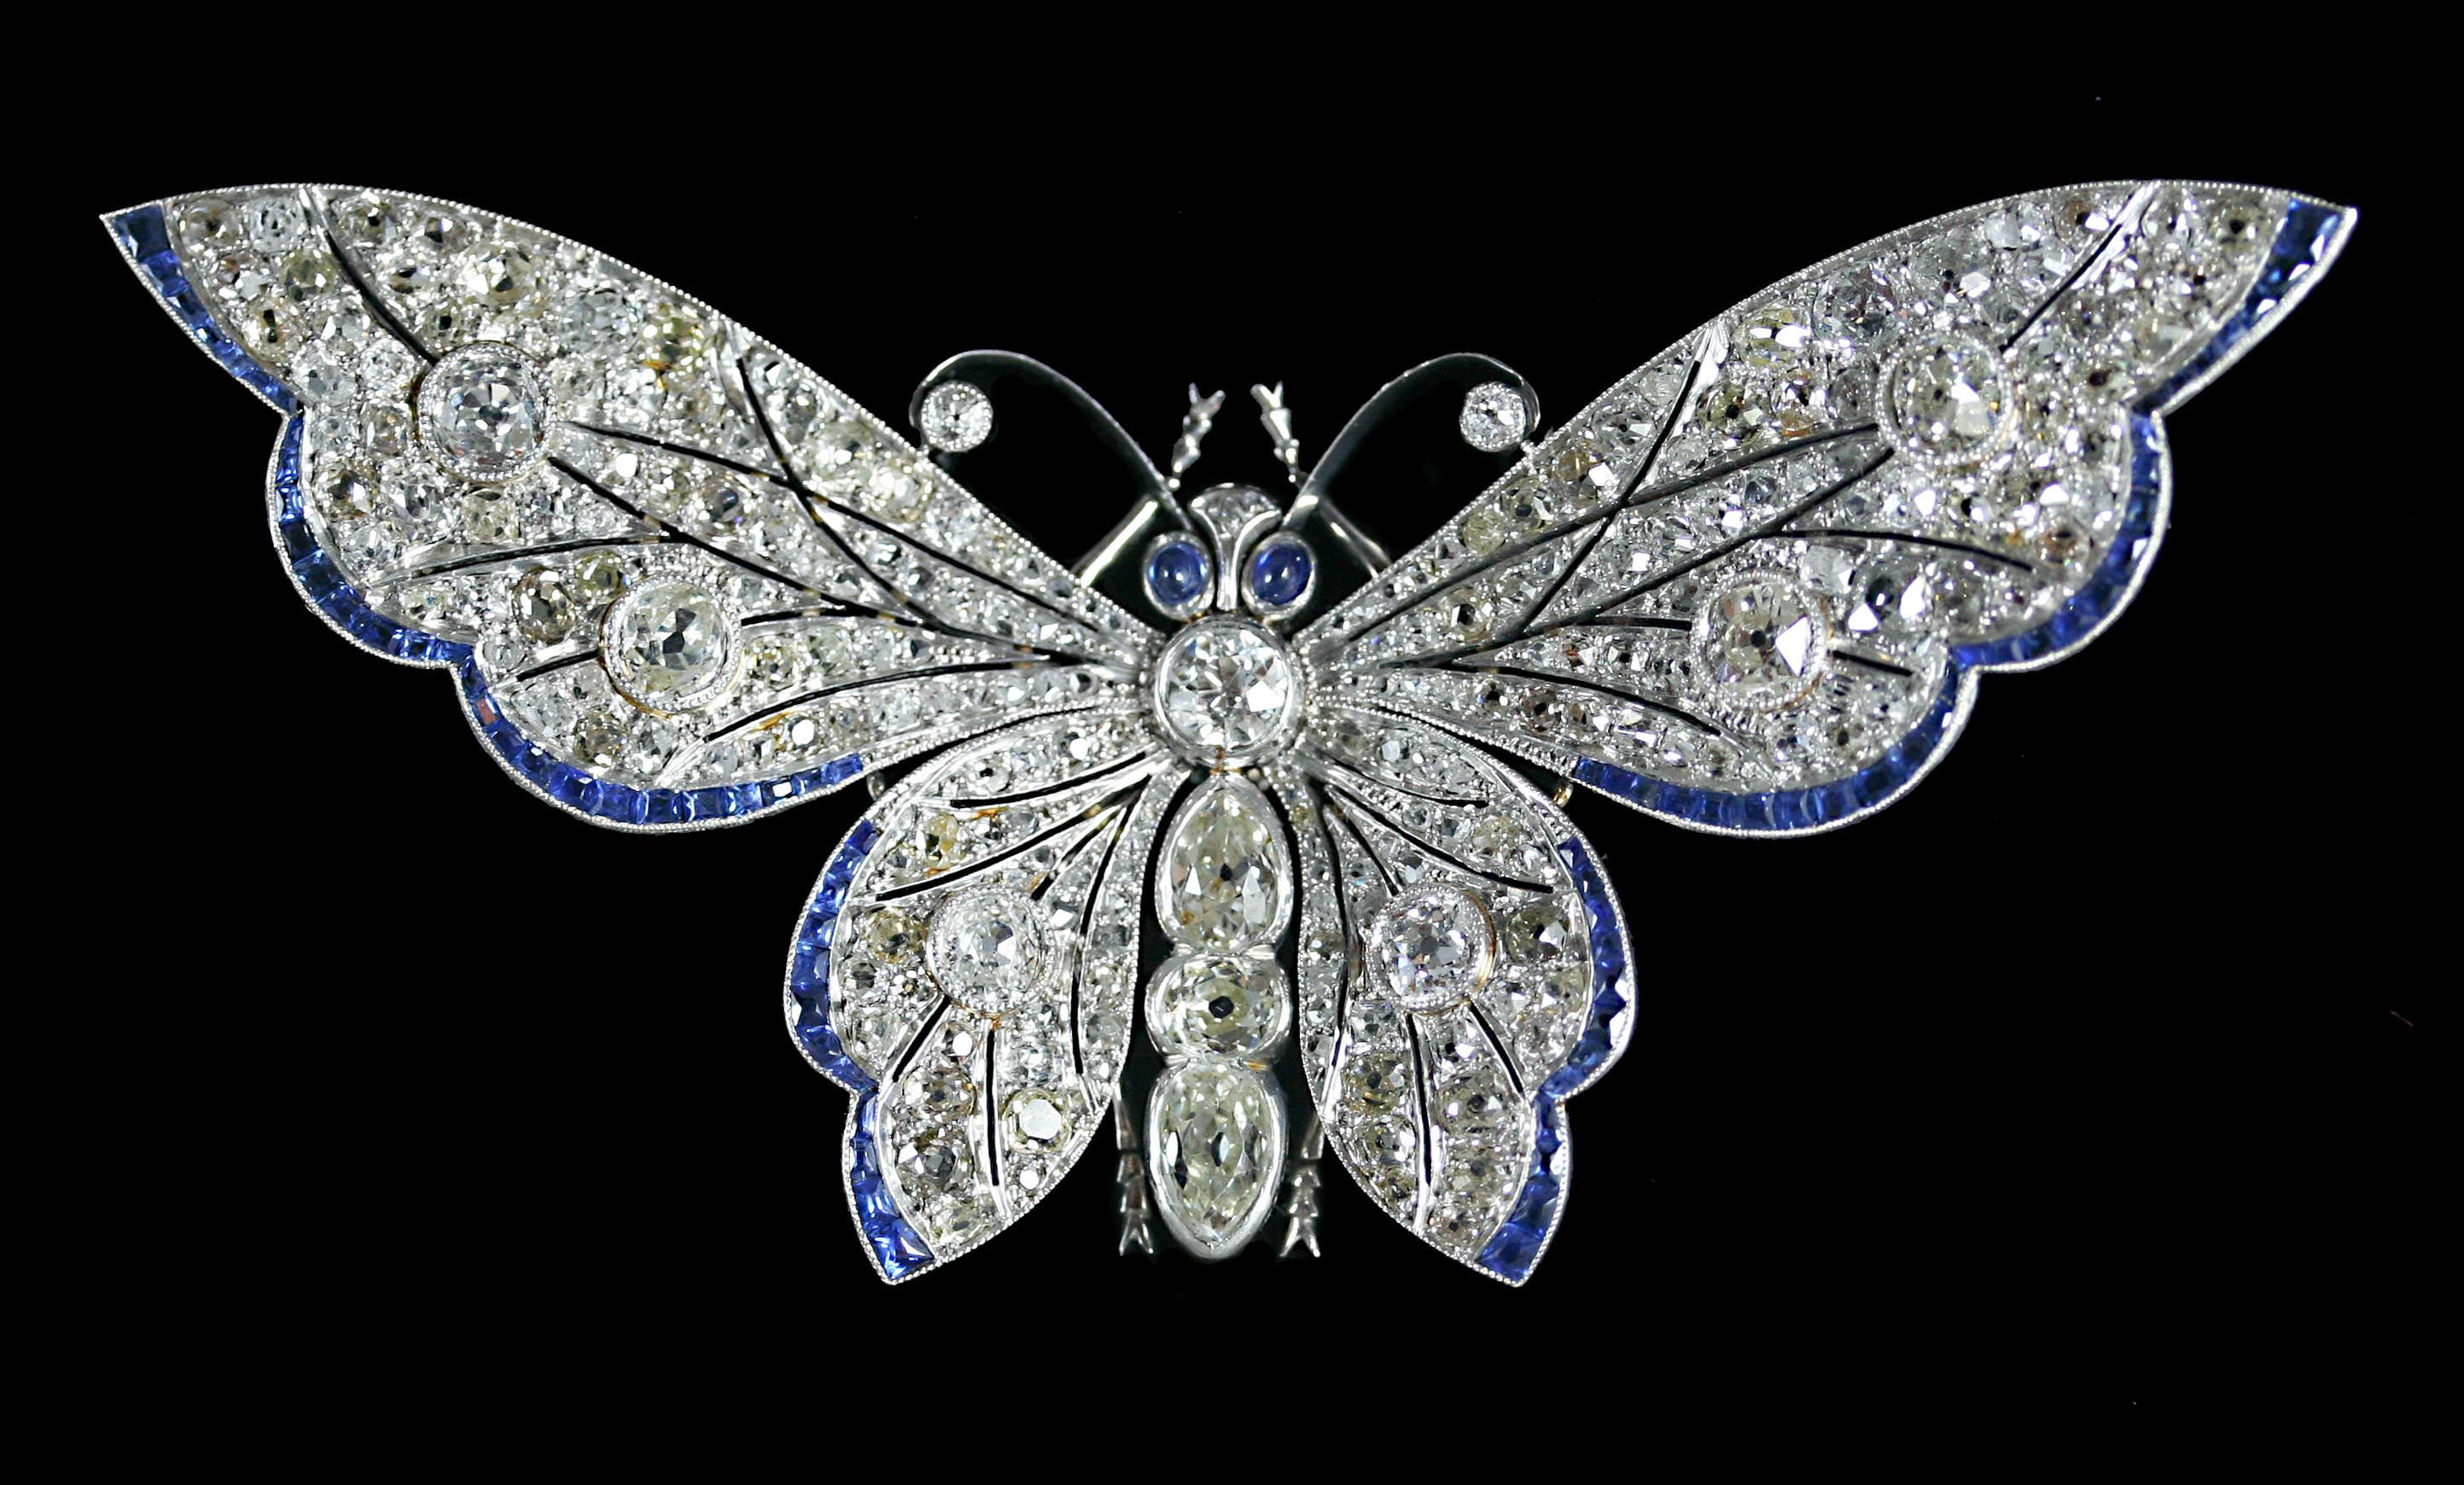 ruby antique nouveau diamond emerald sapphire silver gold sku topped brooch butterfly art